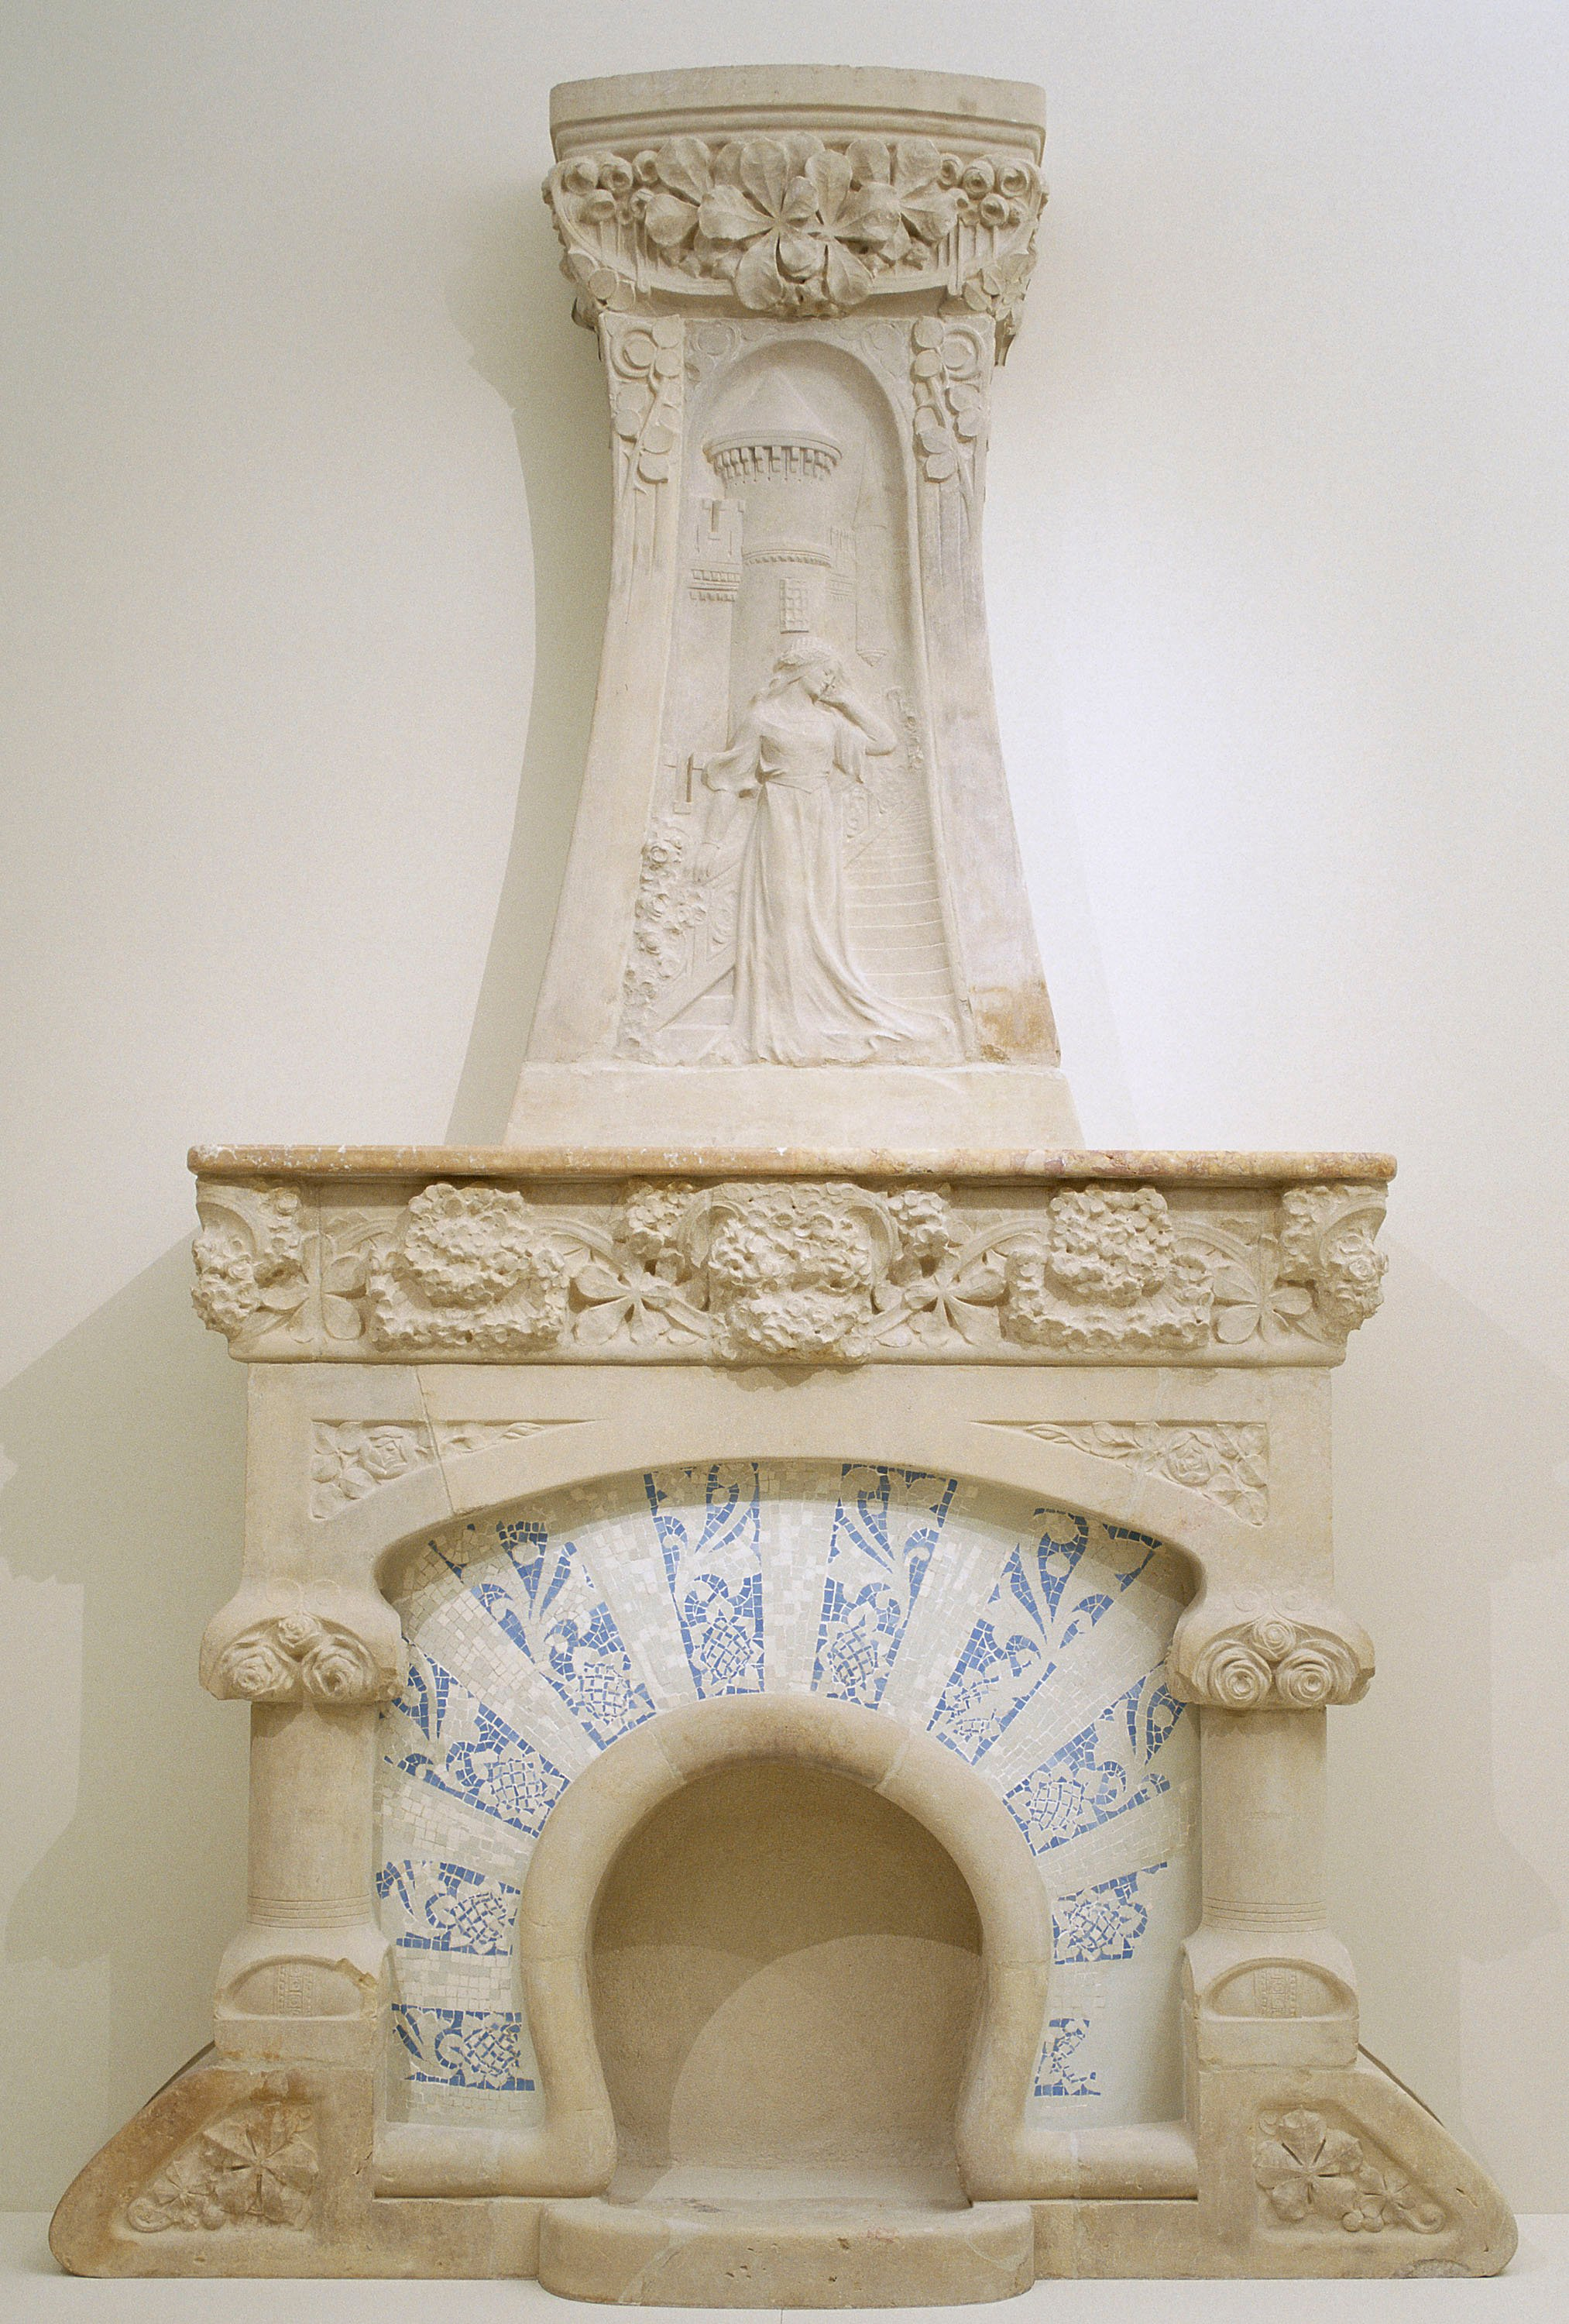 Lluís Domènech i Montaner - Fireplace with Sculptural Relief - Circa 1907